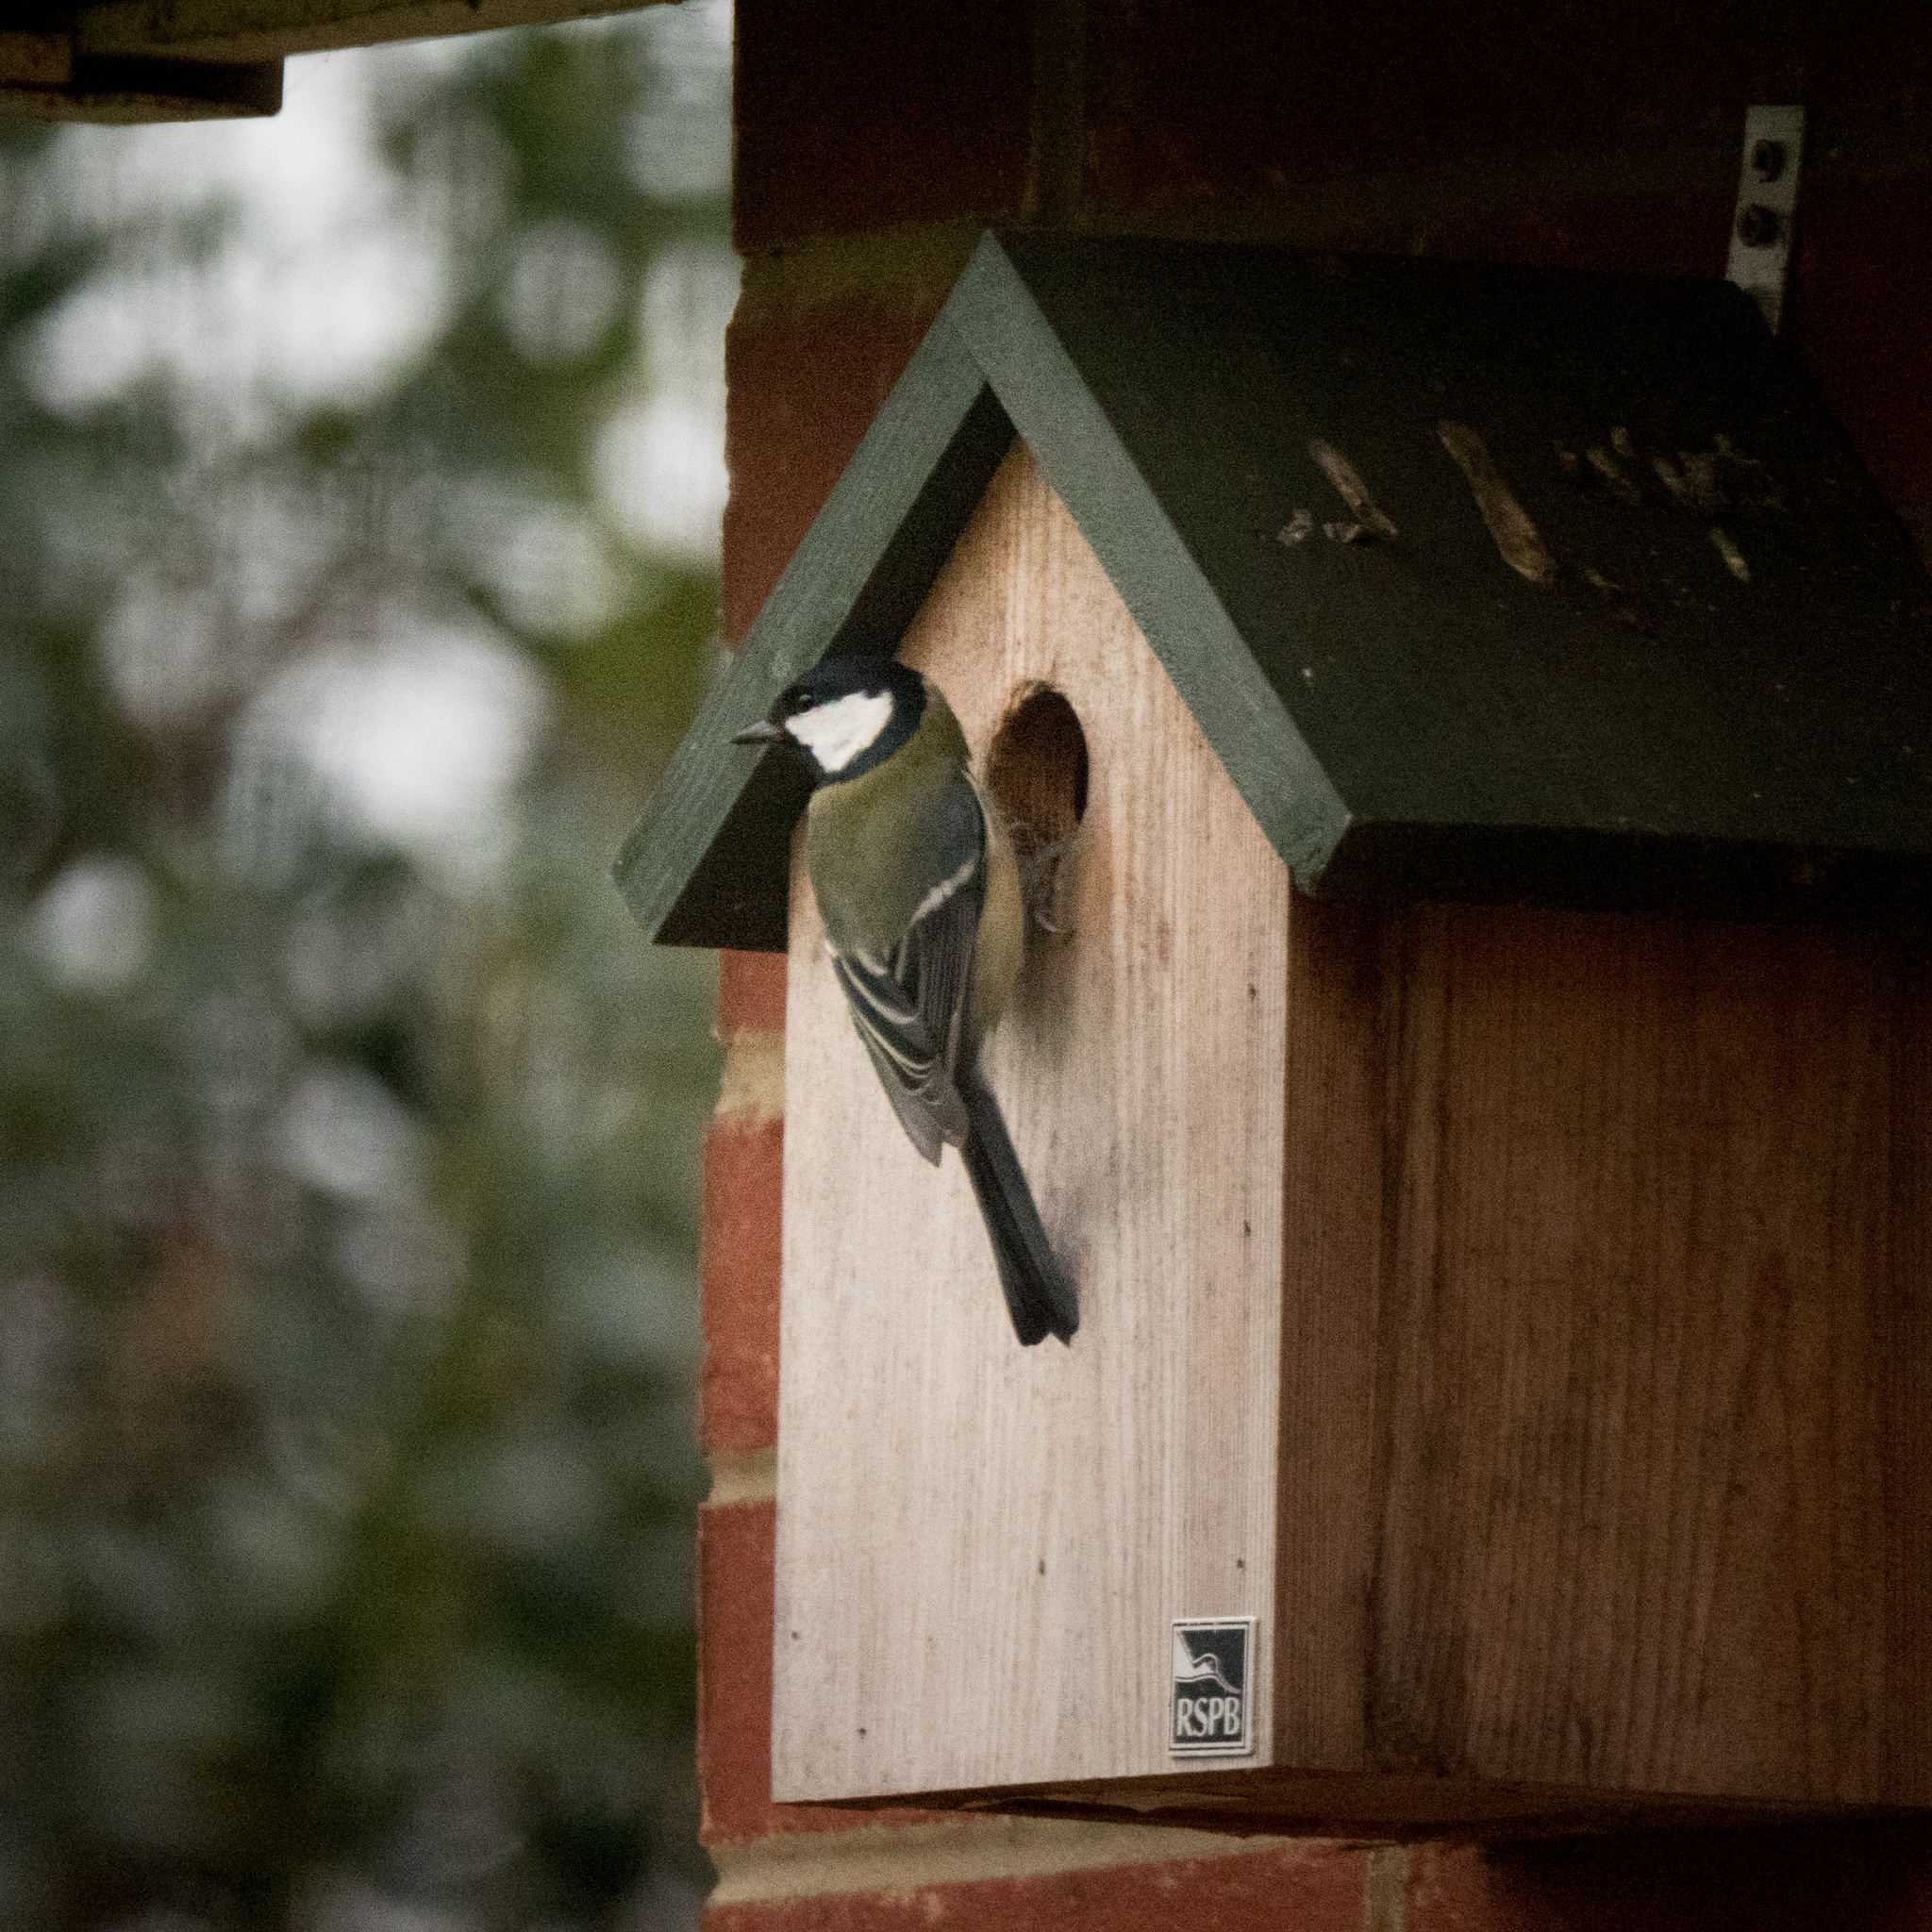 We had bluetits nesting in our bird box last year but it seems the local great tits are interested in taking up residence this year.